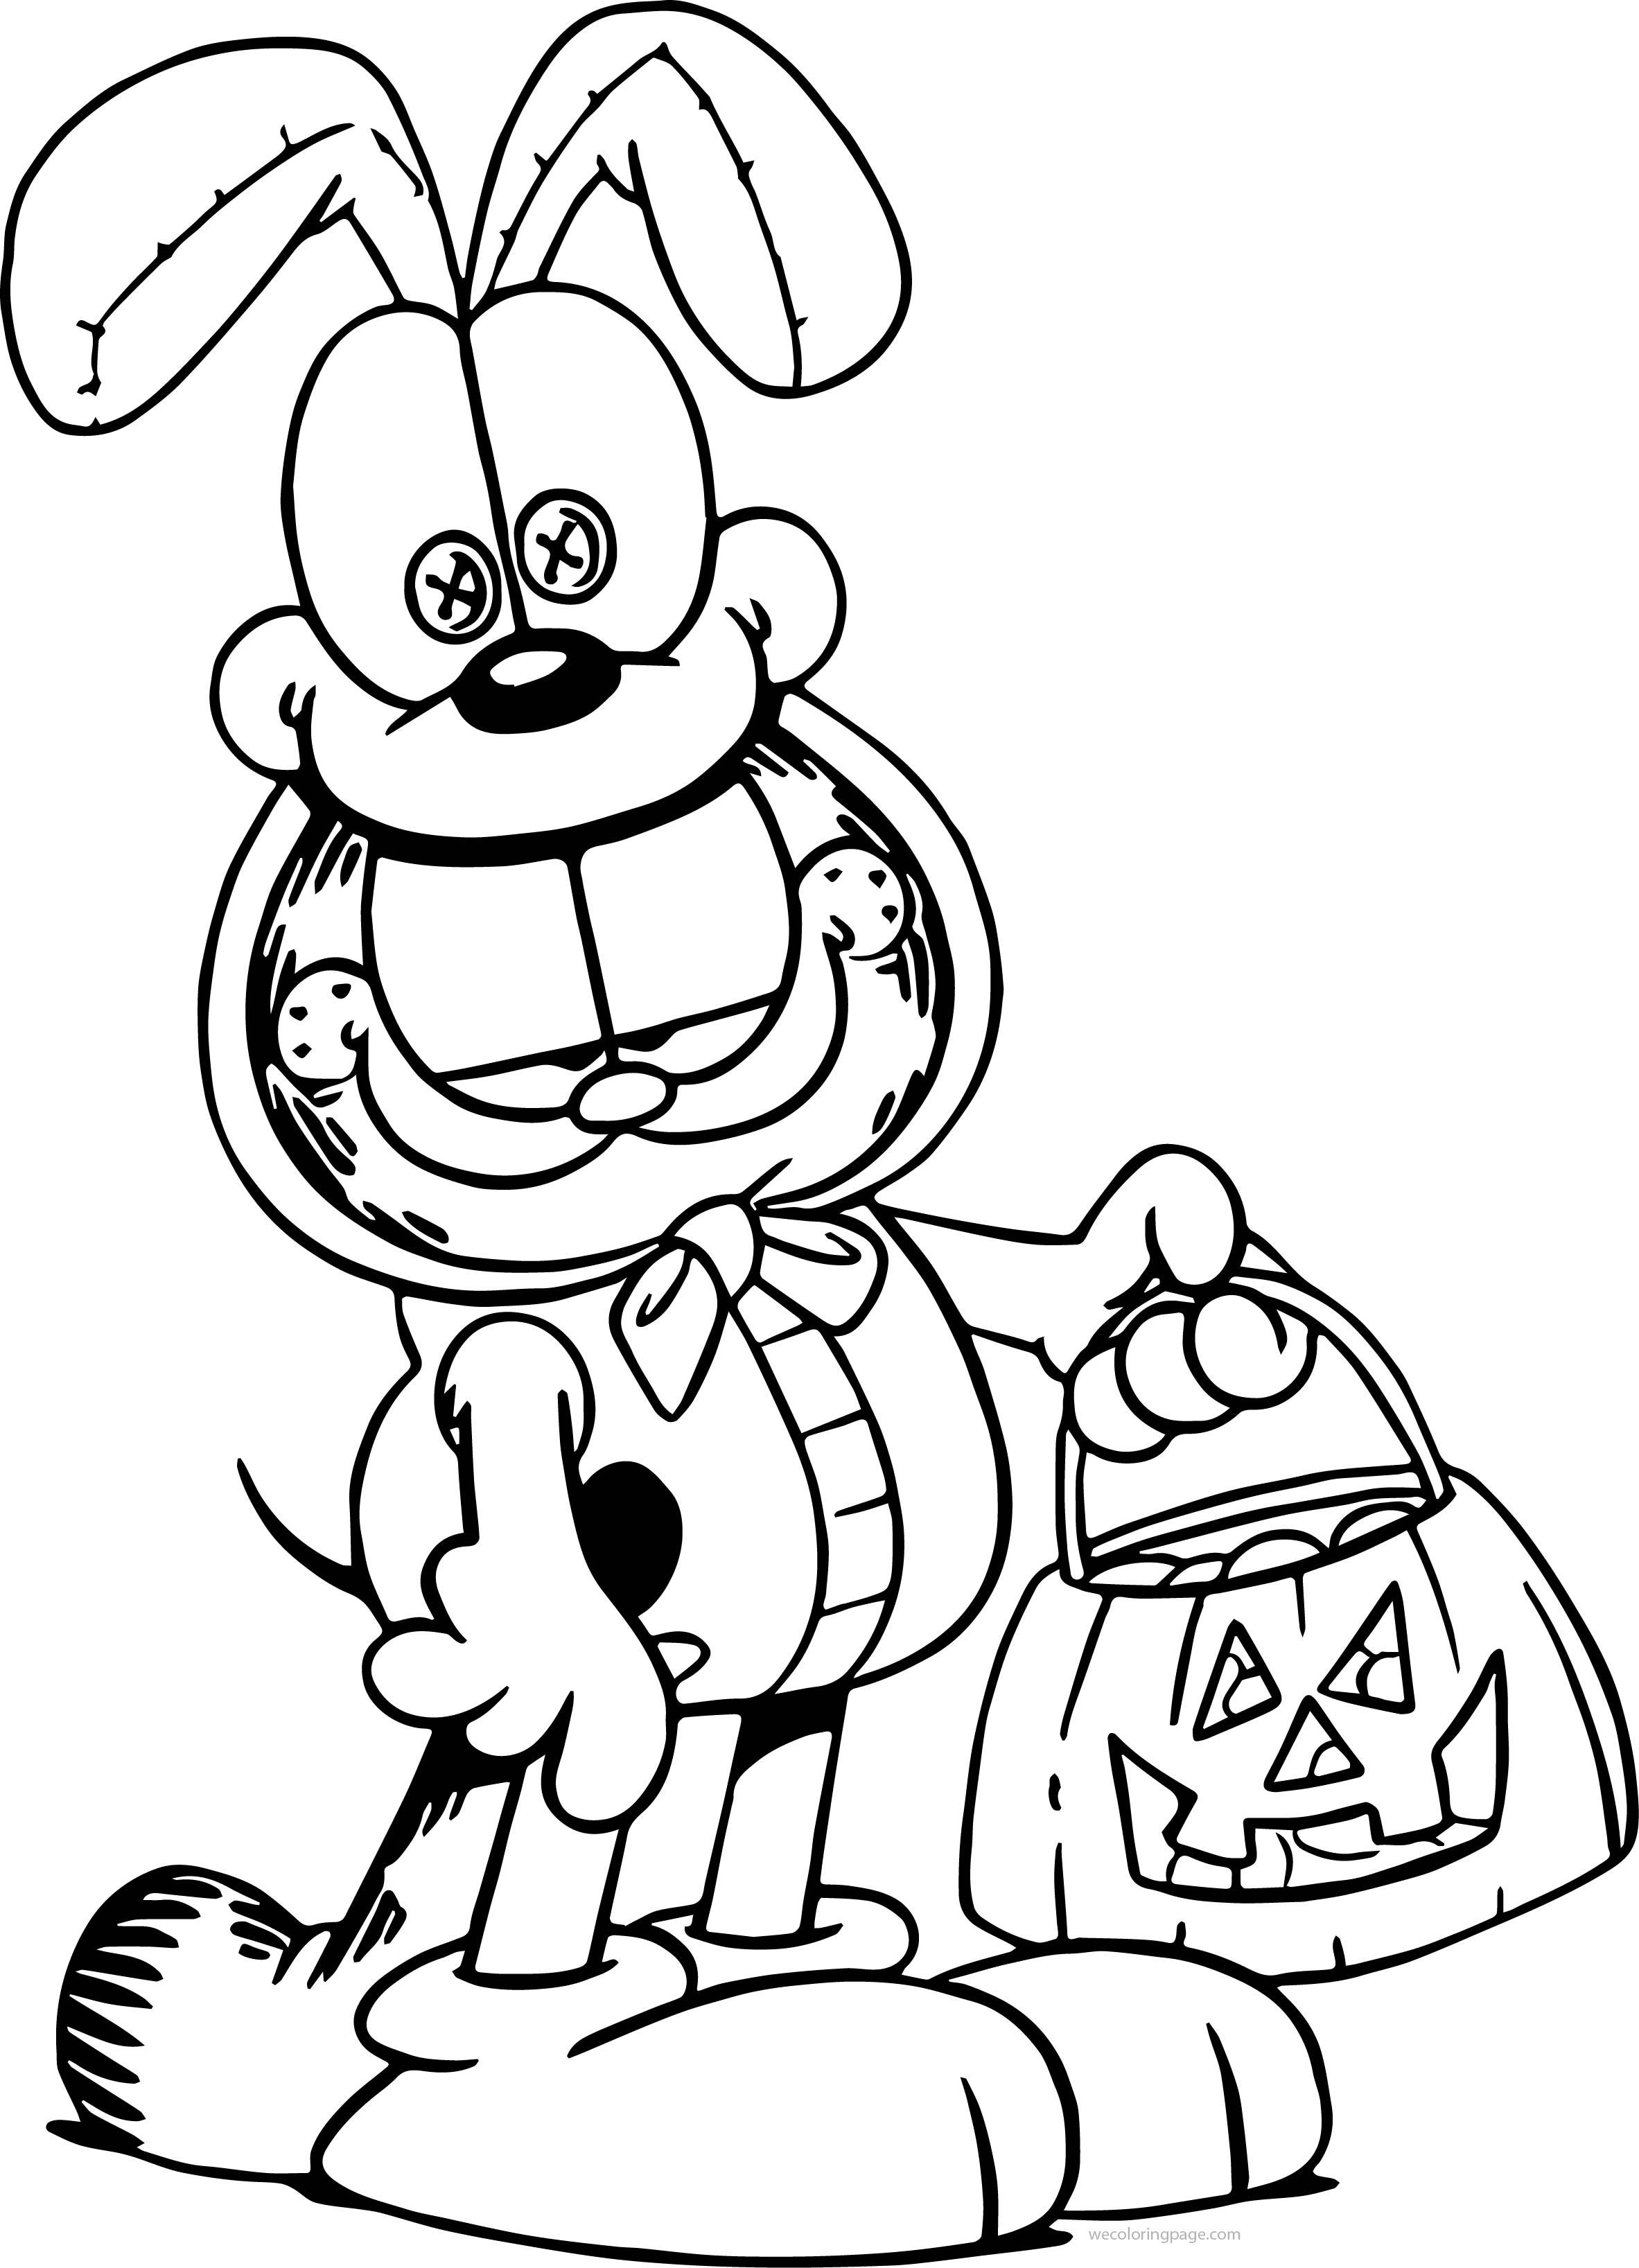 garfield for coloring garfield coloring pages coloring pages for children garfield for coloring